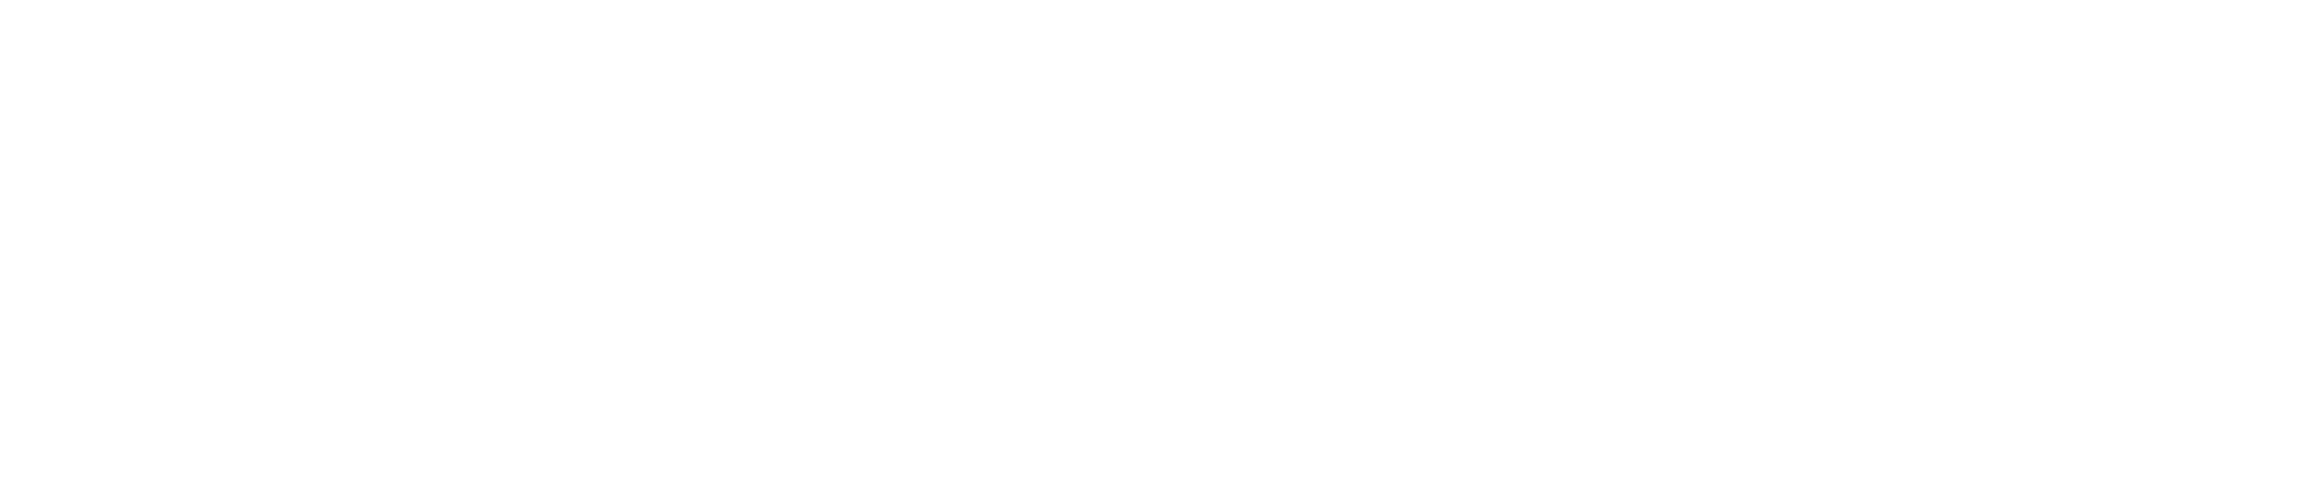 Marketinalia: Blog de Marketing online y ventas - Marketing Emocional - Marketing con Corazón